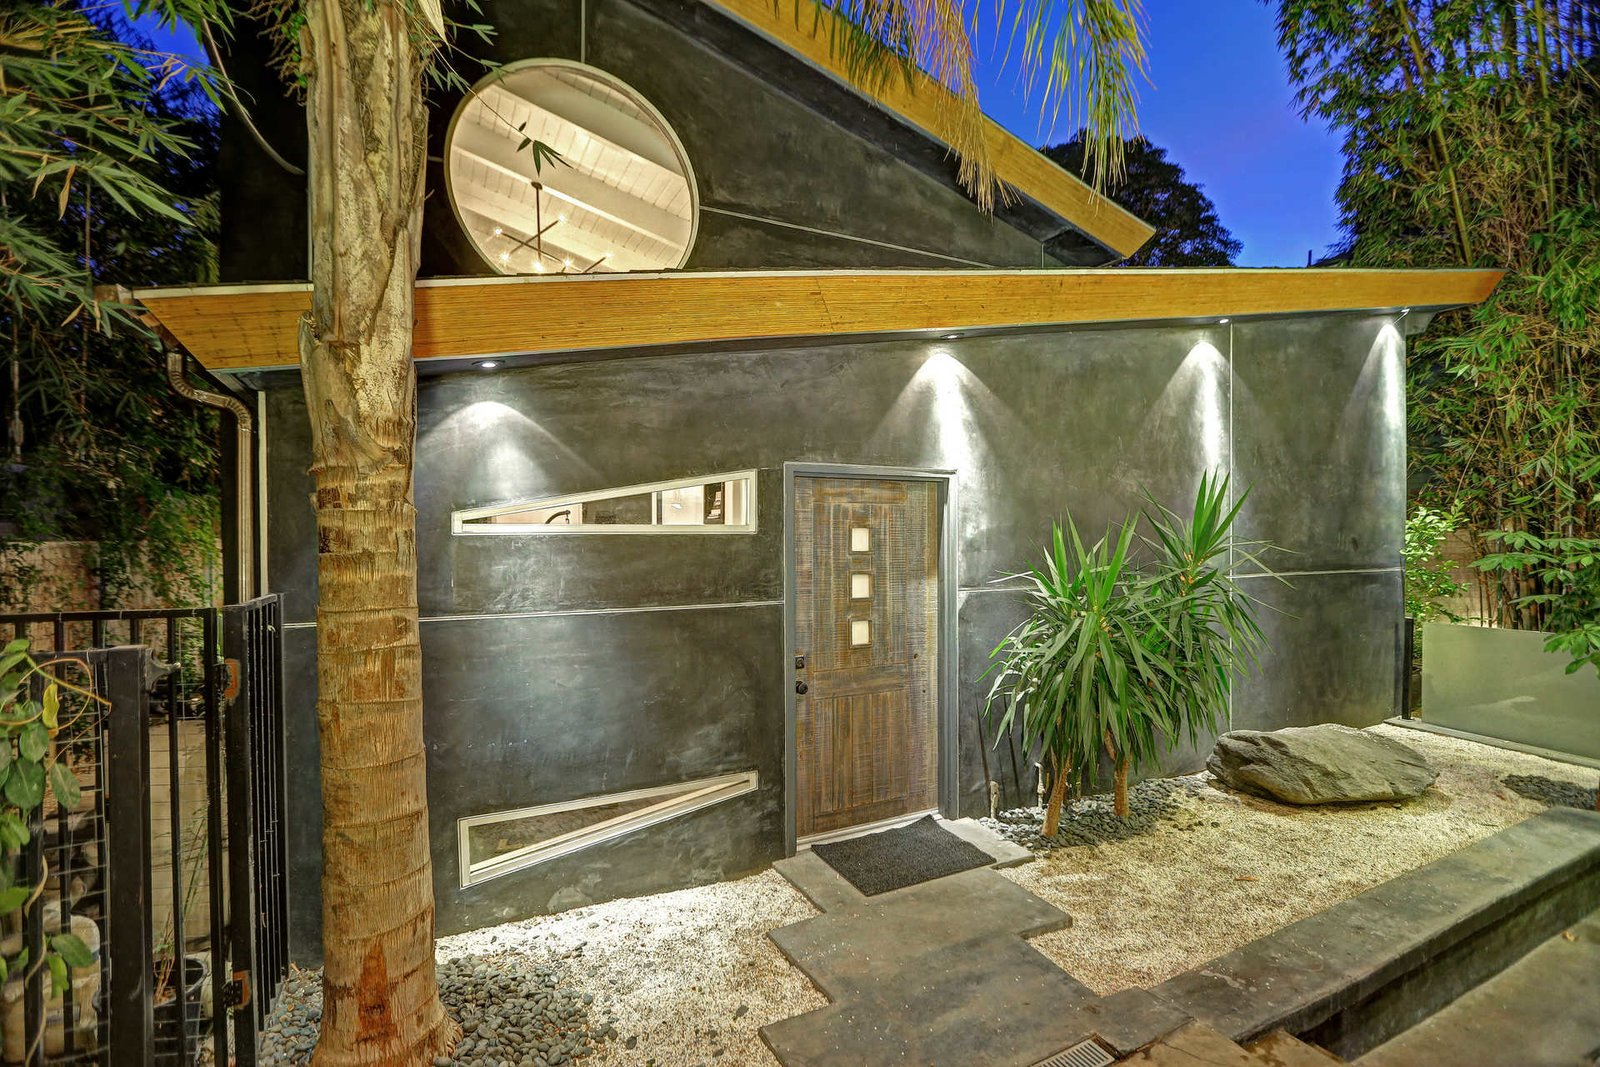 An architectural guest house features with full kitchen and bathroom.  Sleek West Hollywood Contemporary